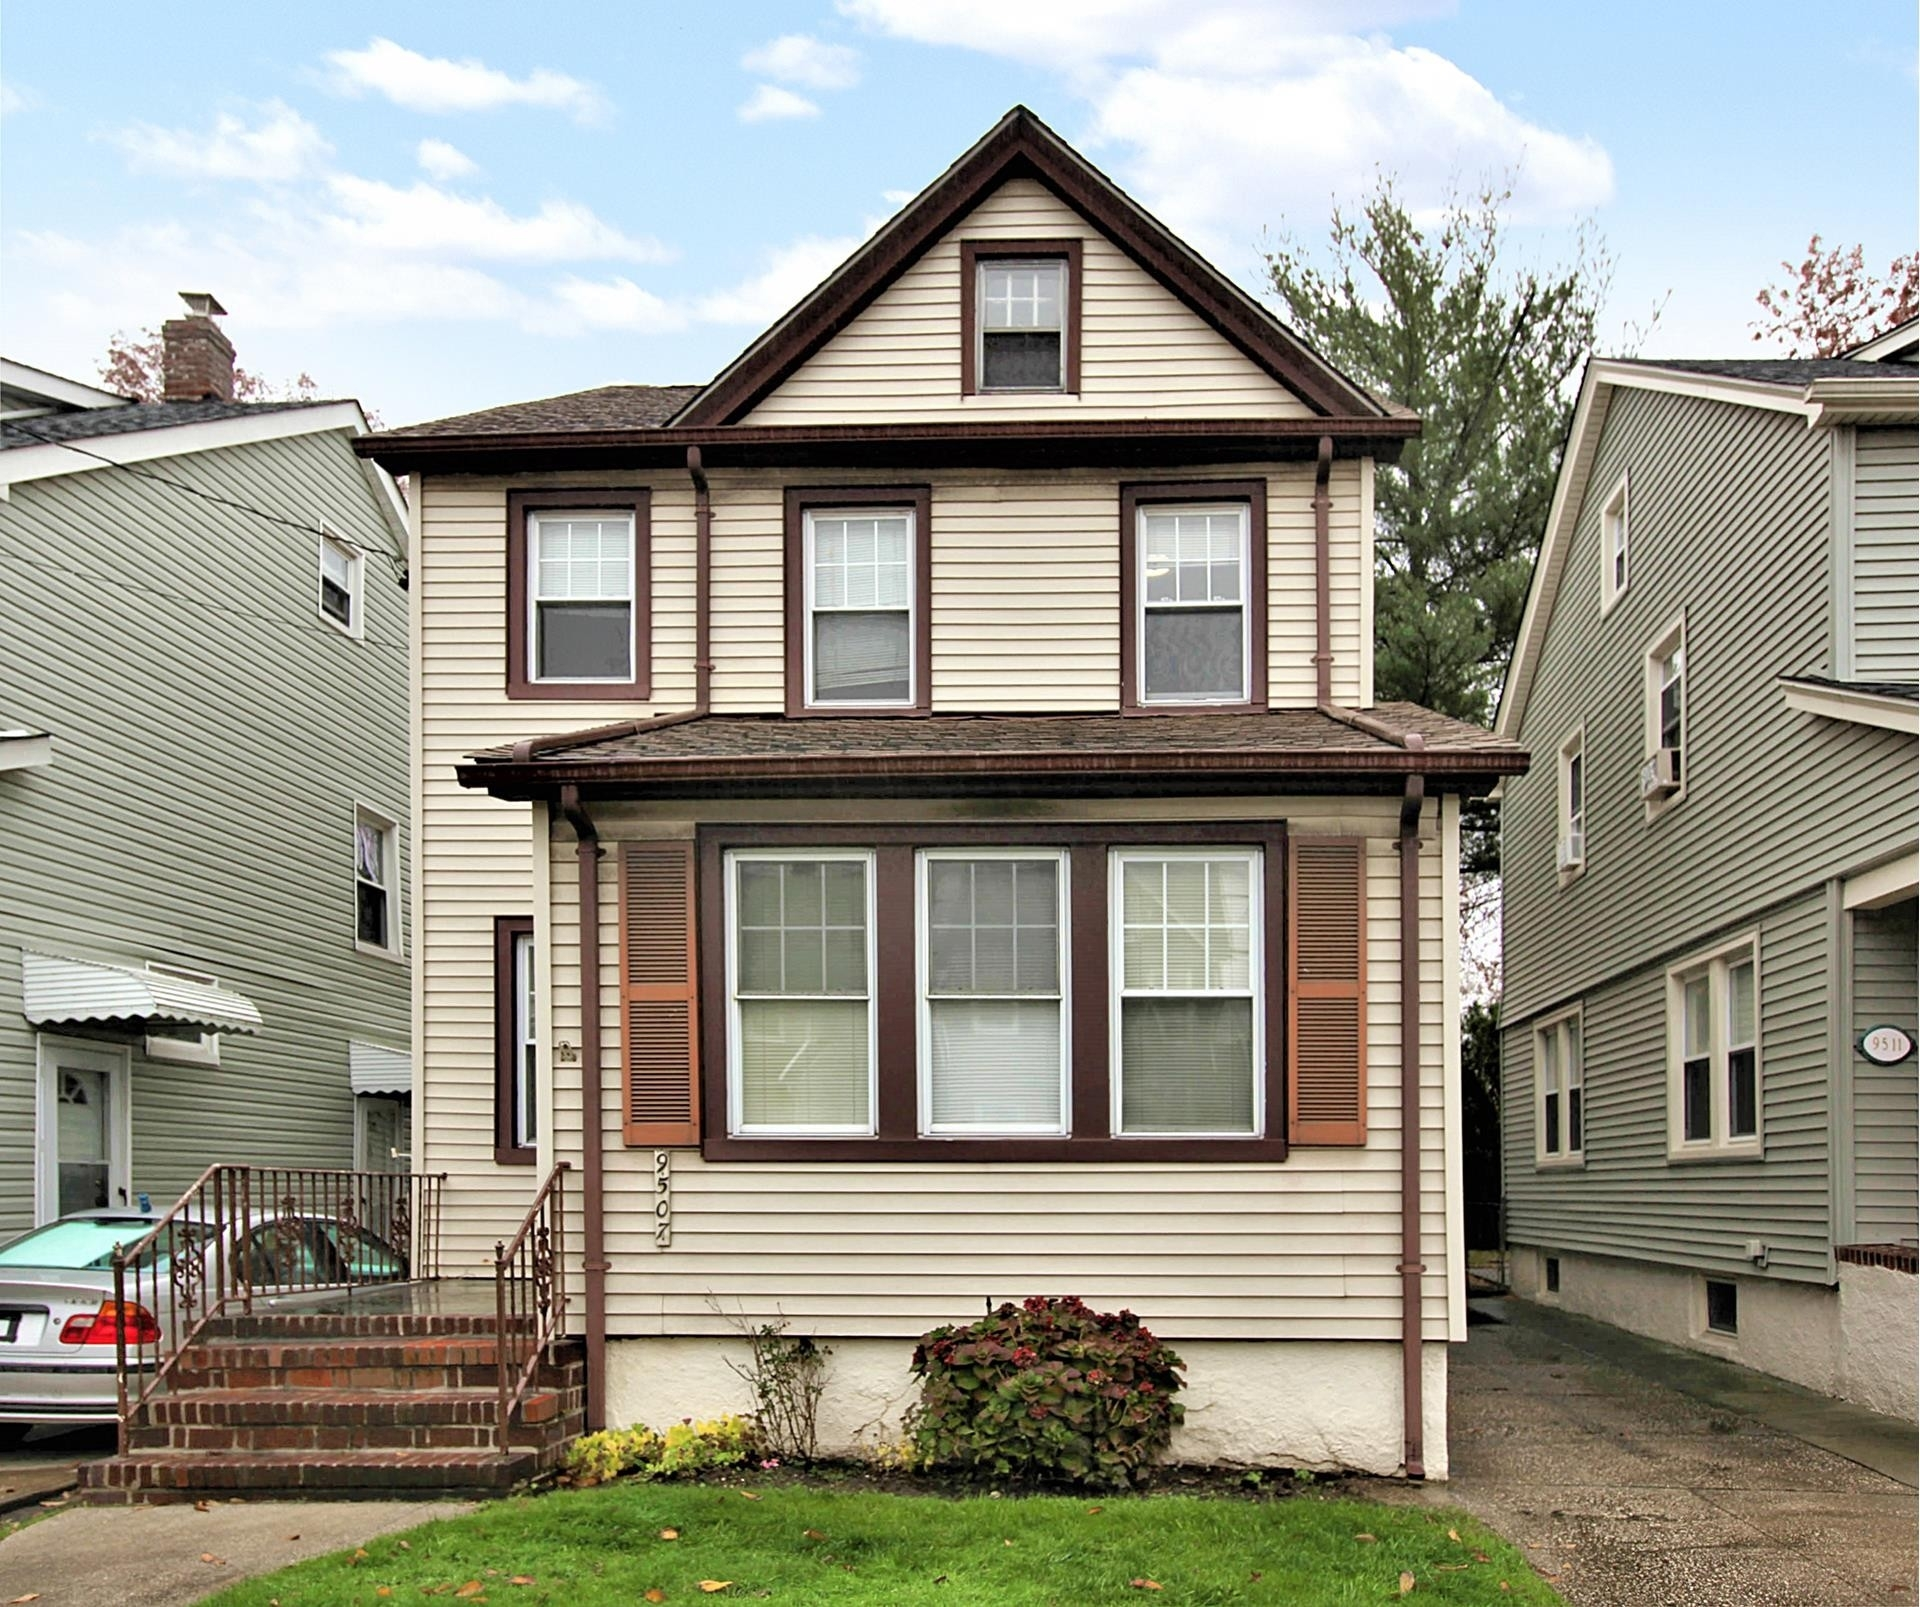 Property at Bellerose Terrace, Floral Park, NY 11001